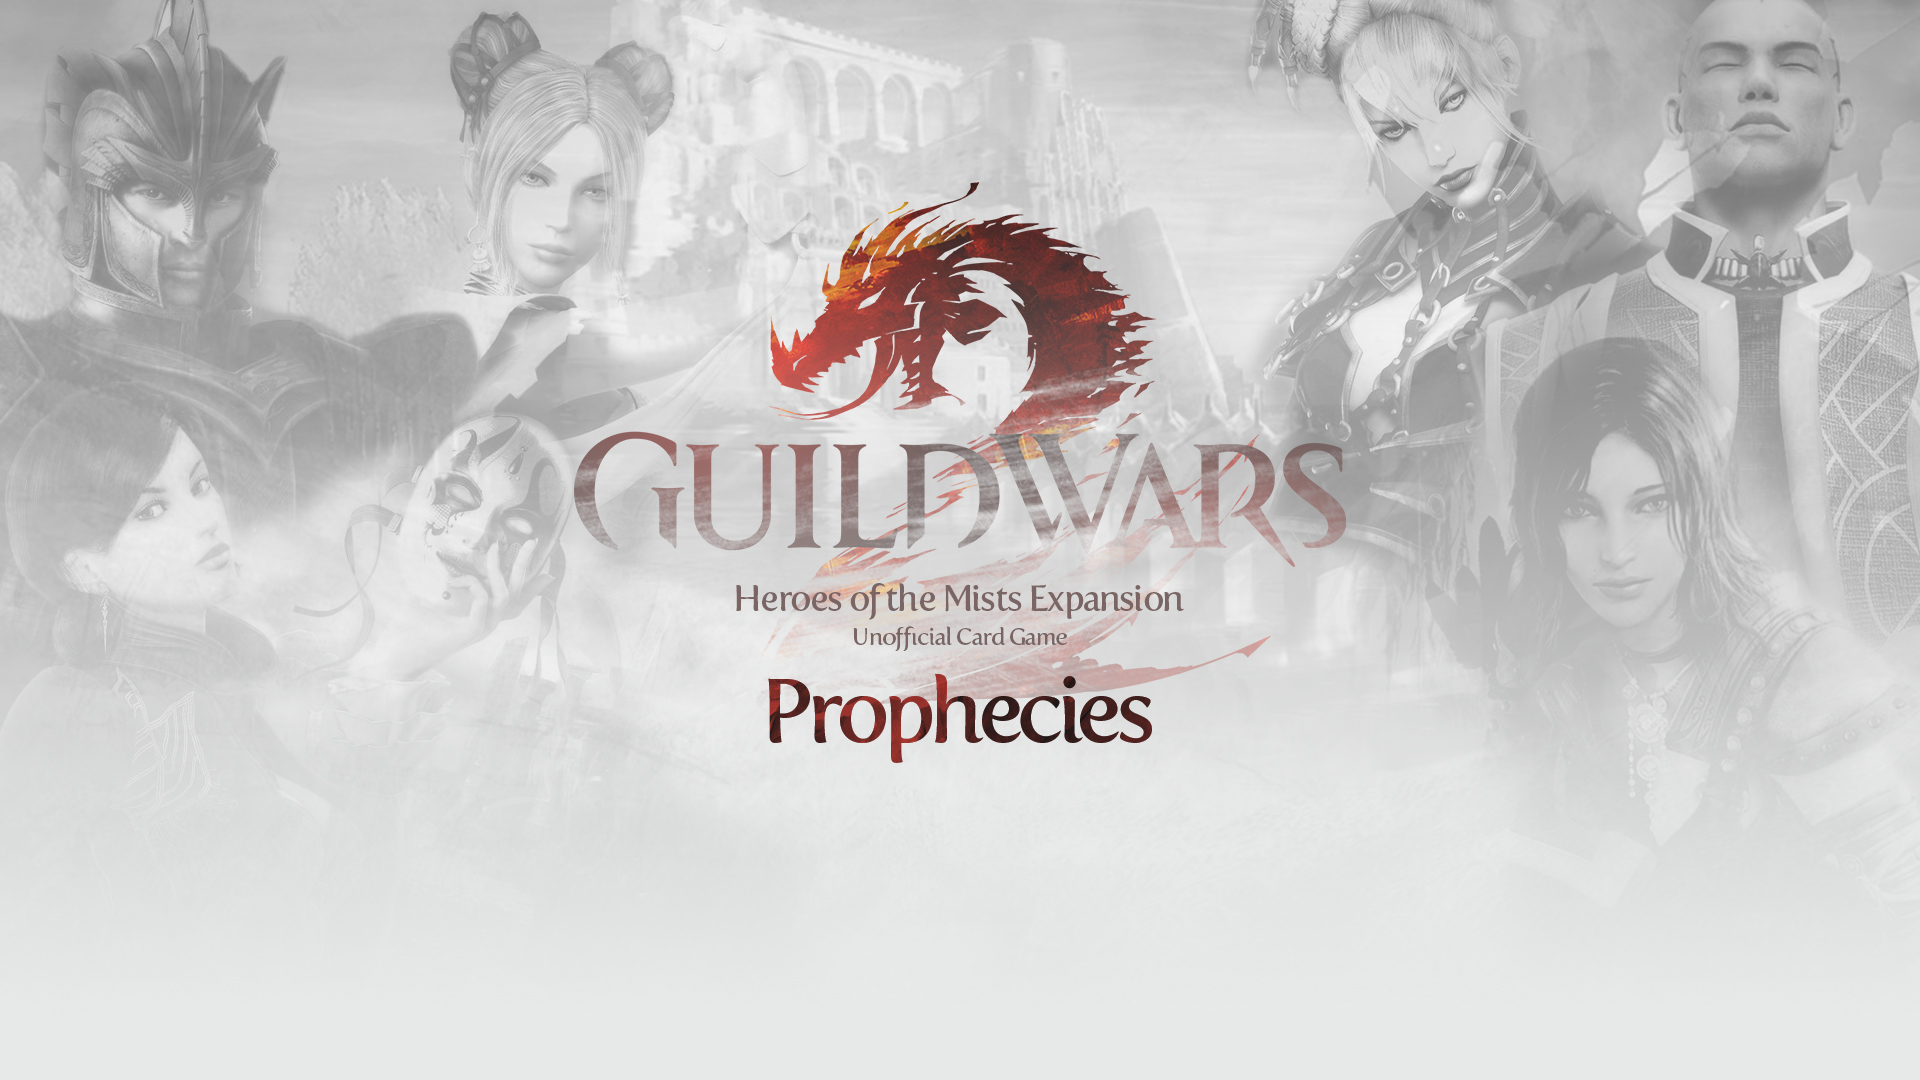 guild wars 2 card game expanson prophecies